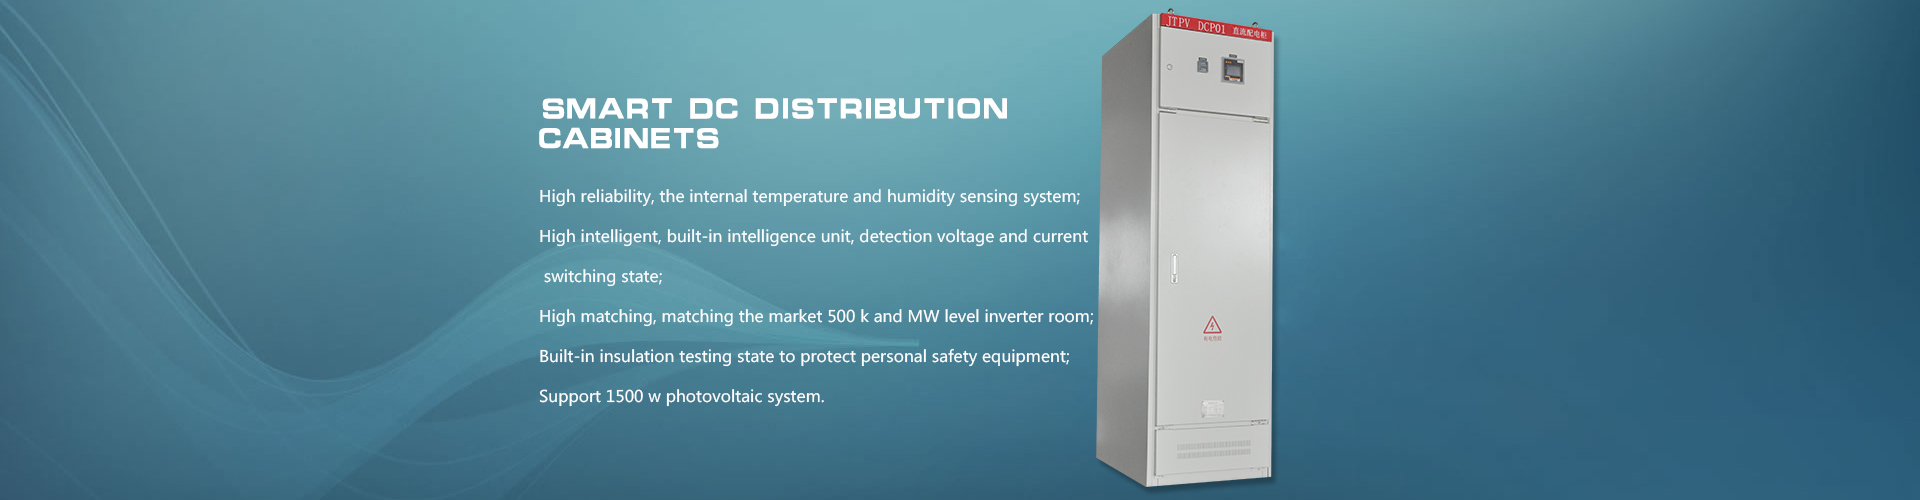 Smart DC Distribution Cabinets